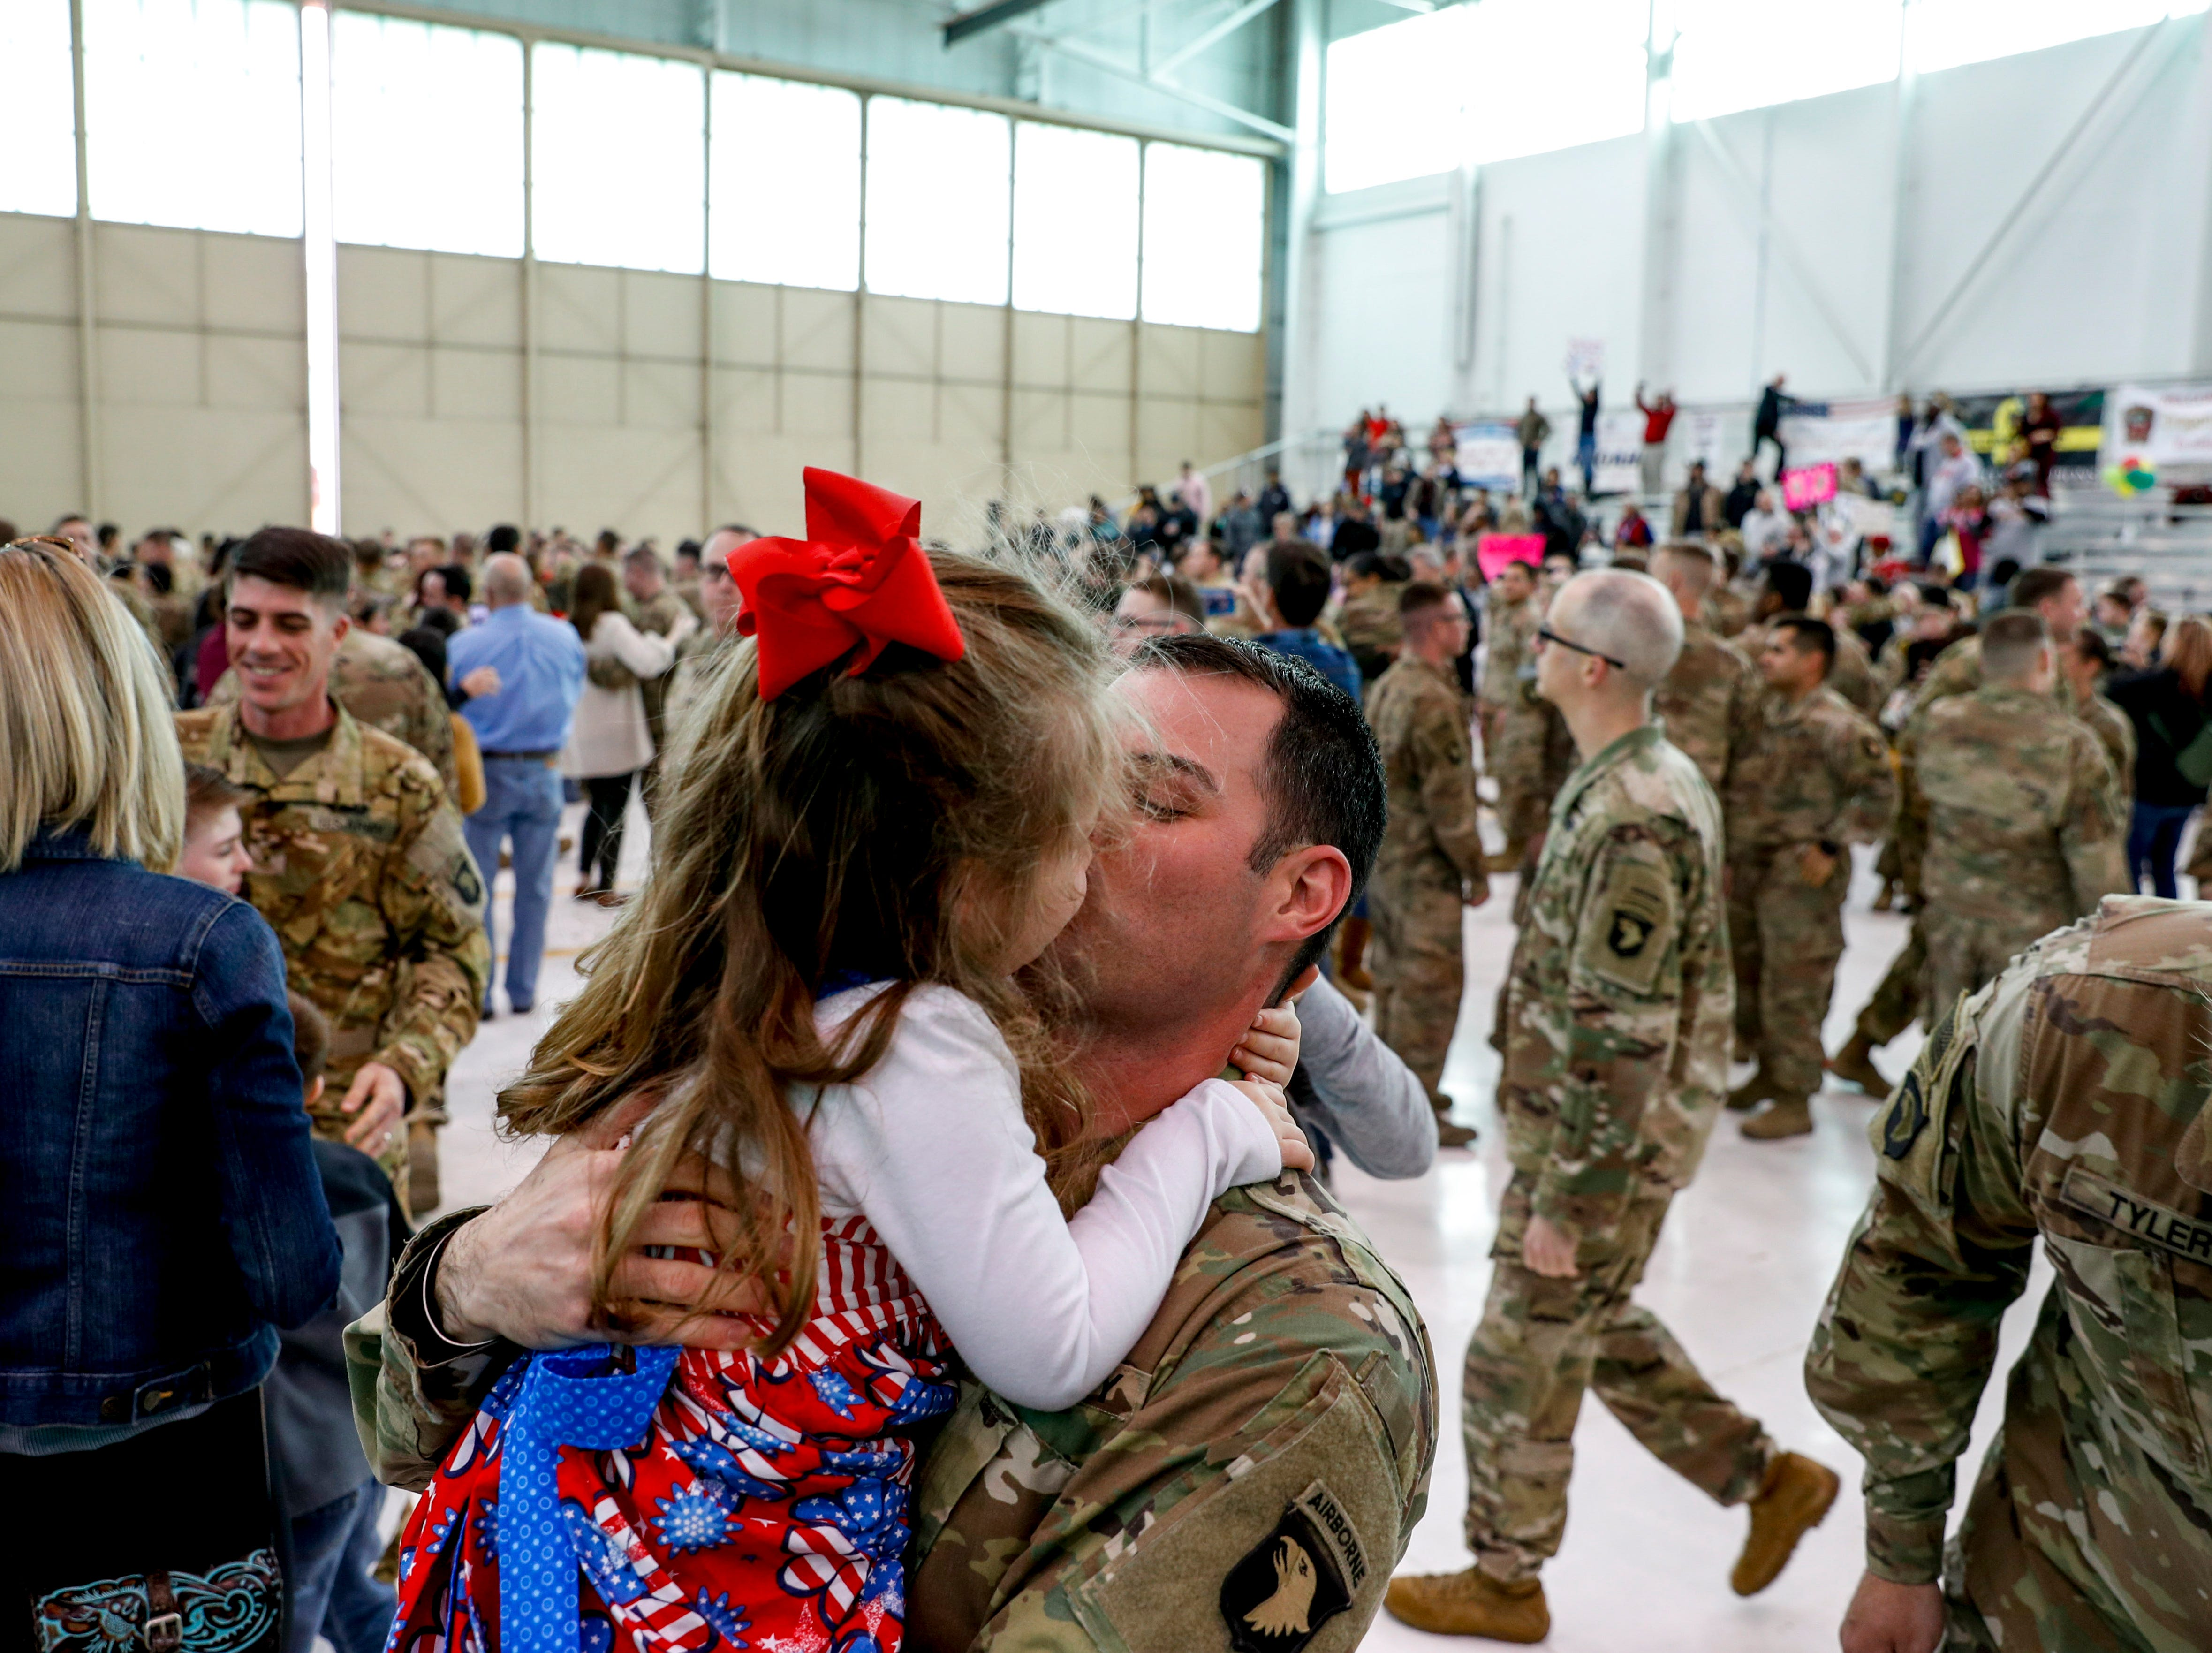 Maj. Greg Sterley lifts up and kisses his daughter Allison Sterley, 4, after seeing her for the first time upon return from his deployment in Afghanistan during the return of soldiers from the 101st Combat Aviation Brigade of 101st Airborne Division (Air Assault) at Campbell Army Air Field in Fort Campbell, KY., on Sunday, March 10, 2019.